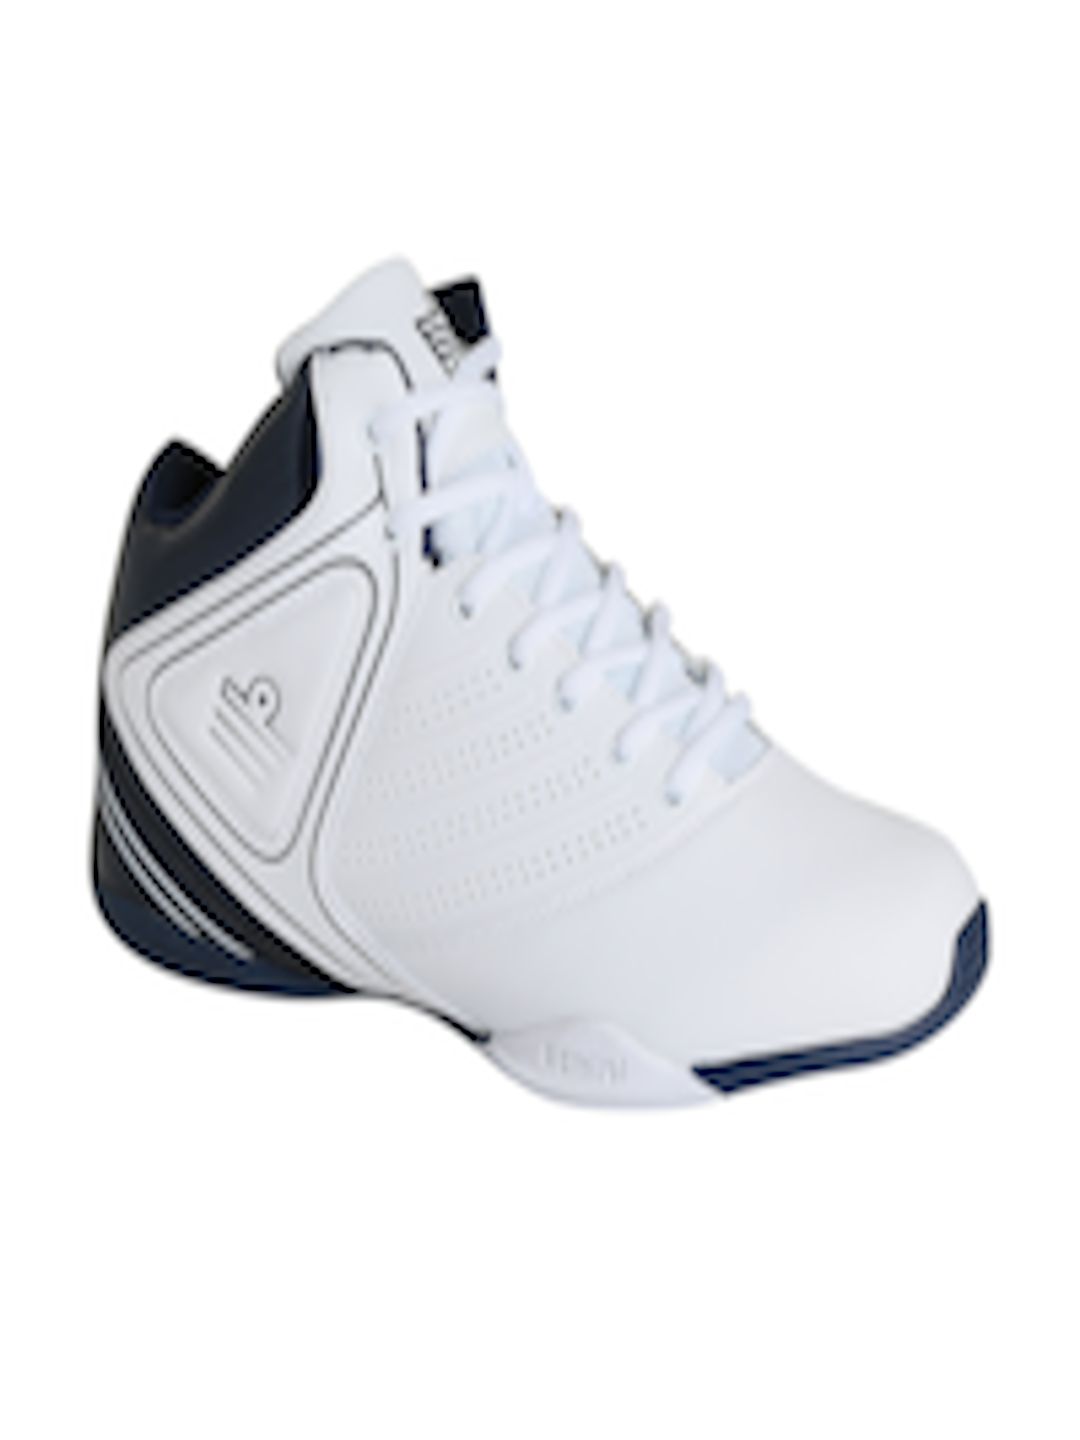 1e433e6bc33 Buy Admiral Men White   Navy Colourblocked Leather Dribbler Basketball Shoes  - Sports Shoes for Men 1875848